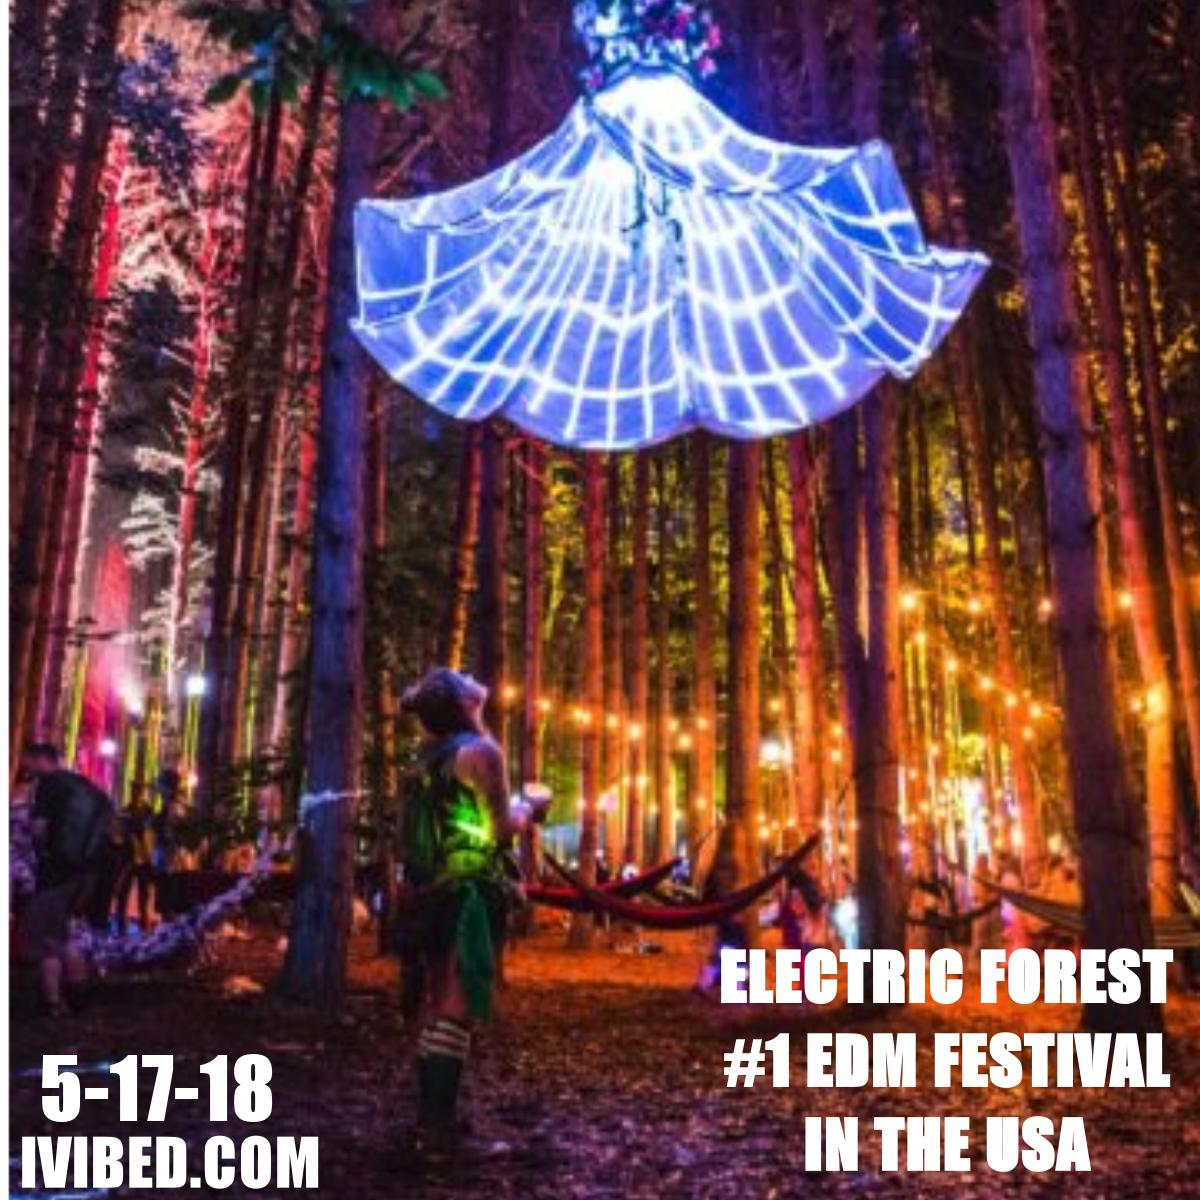 ELECTRIC FOREST IS THE BEST EDM FESTIVAL IN THE WORLD